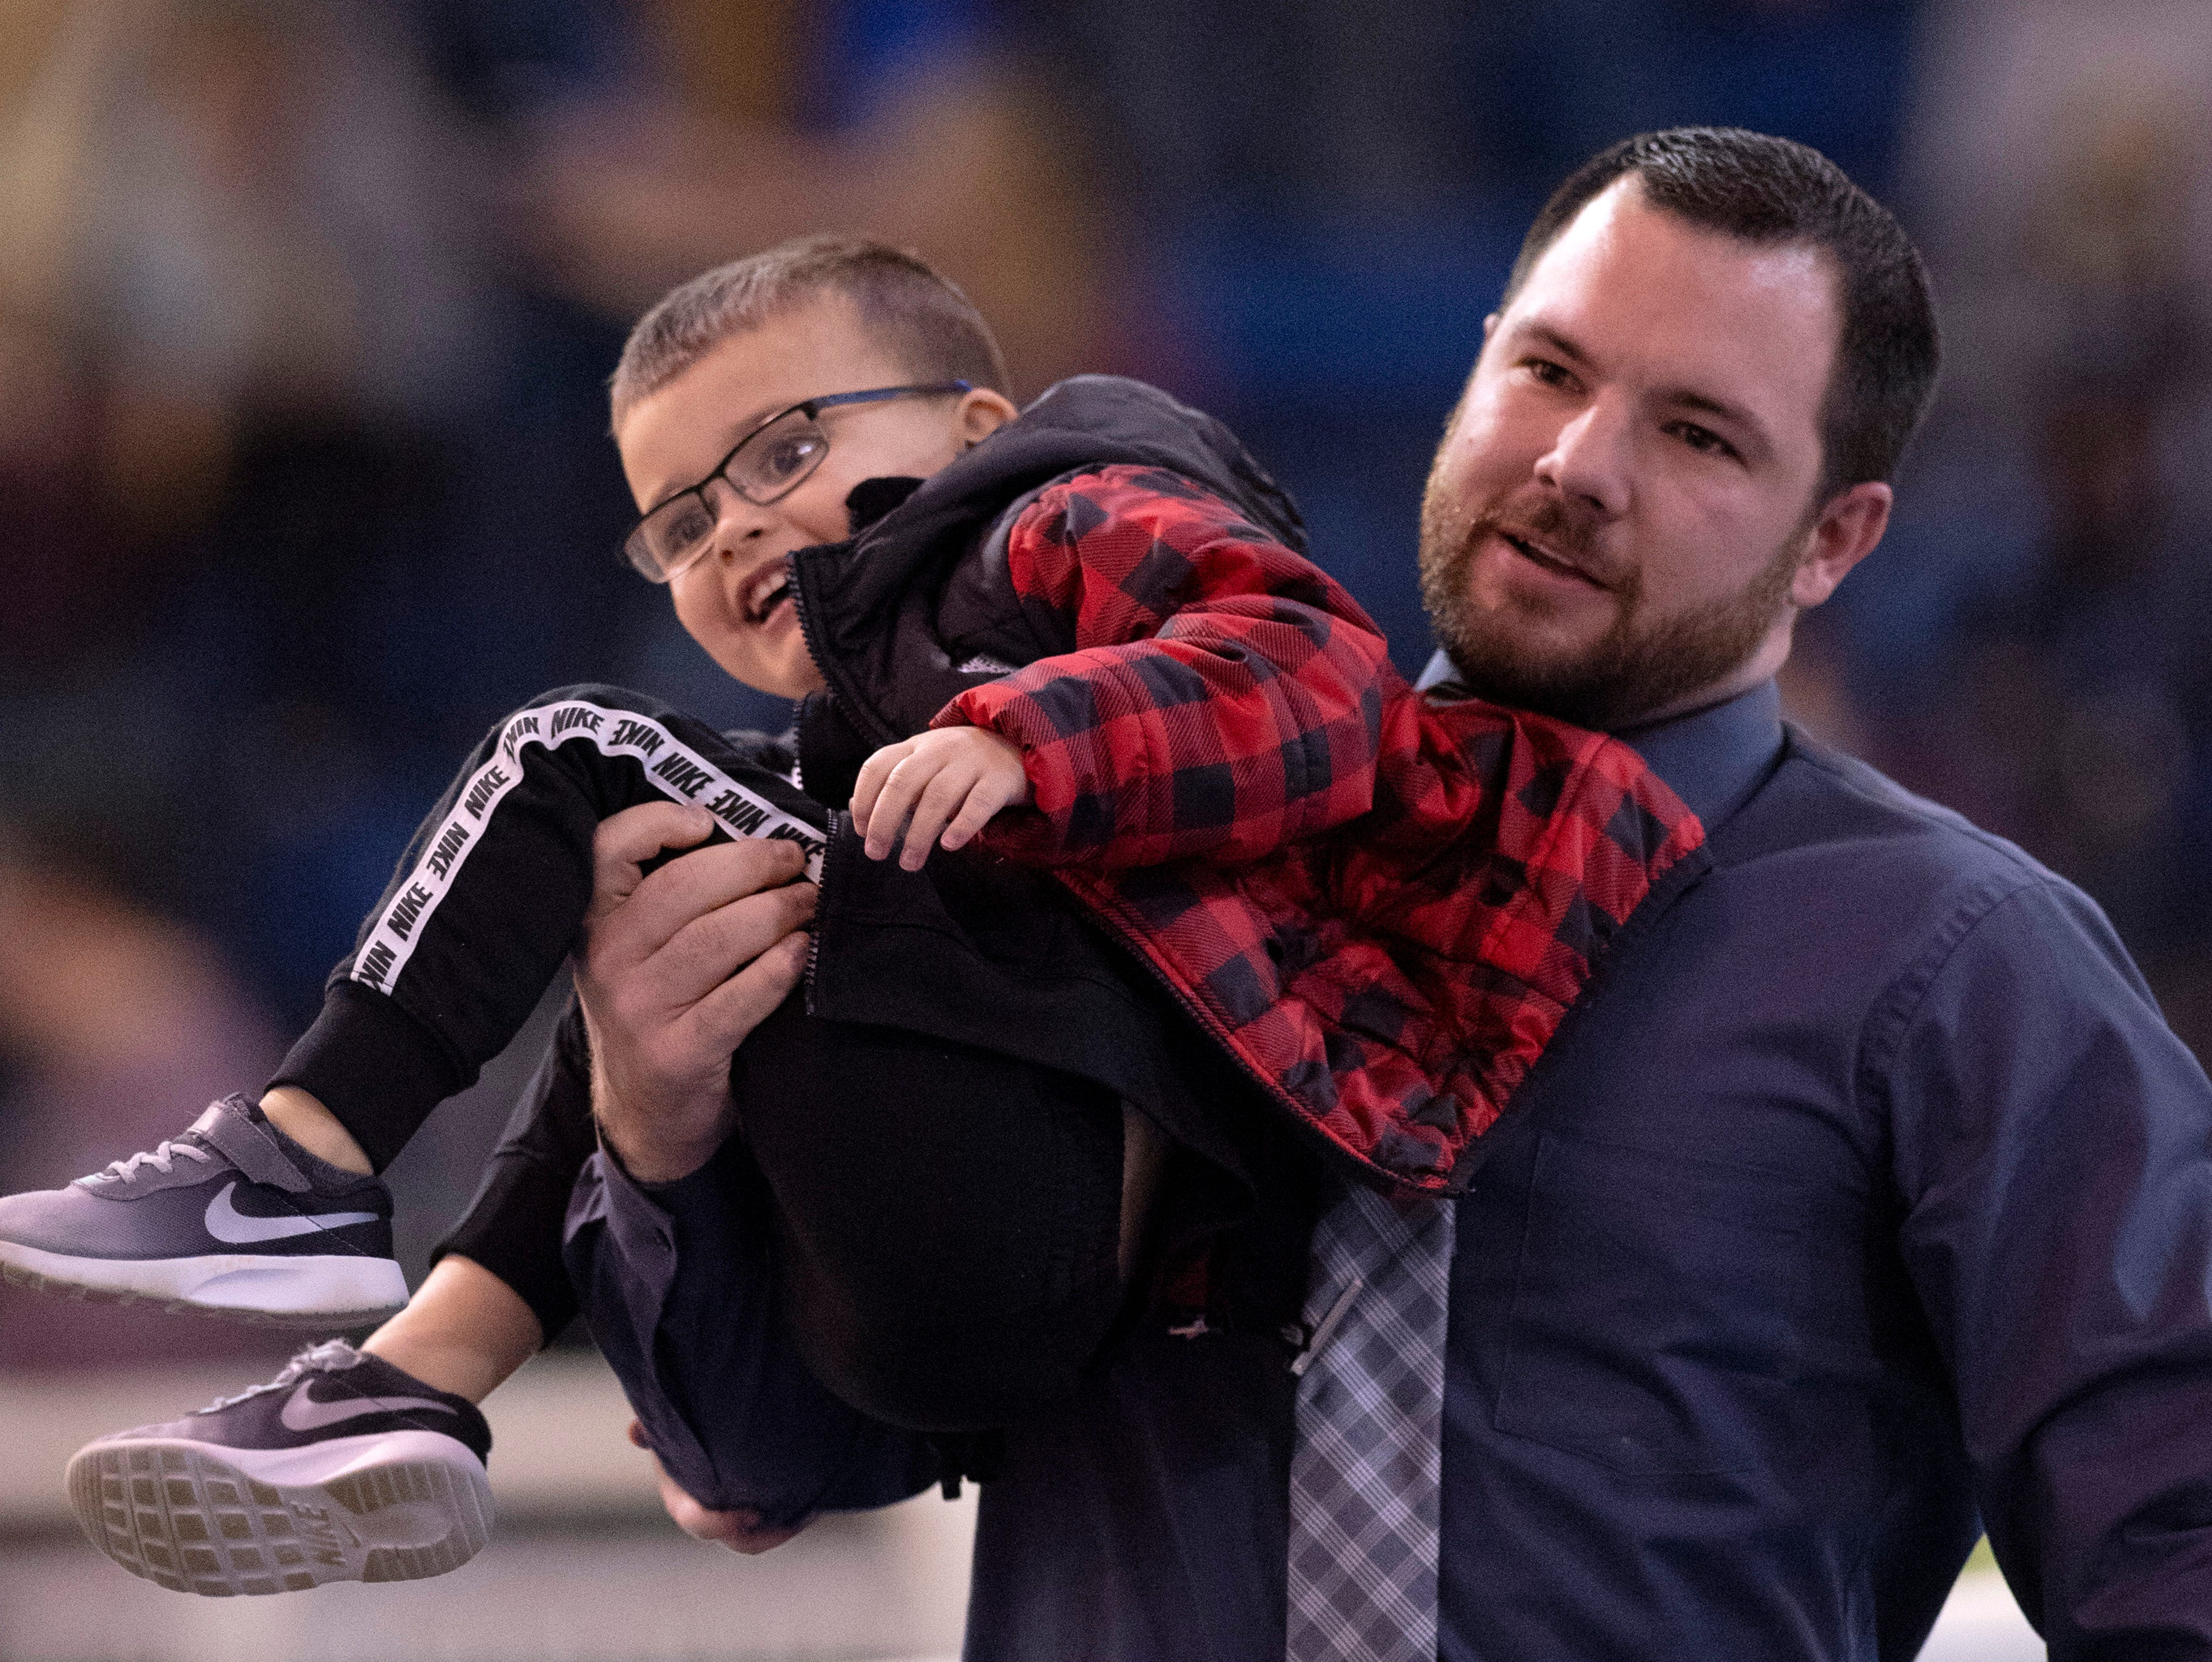 Cory Coble, Trigg County's basketball coach, returns his son, Owen, 4, to his mom after the youngster made a break between games at the Girls Region Tournament semifinals at the Rocket Arena in Marion, Ky., Monday night.